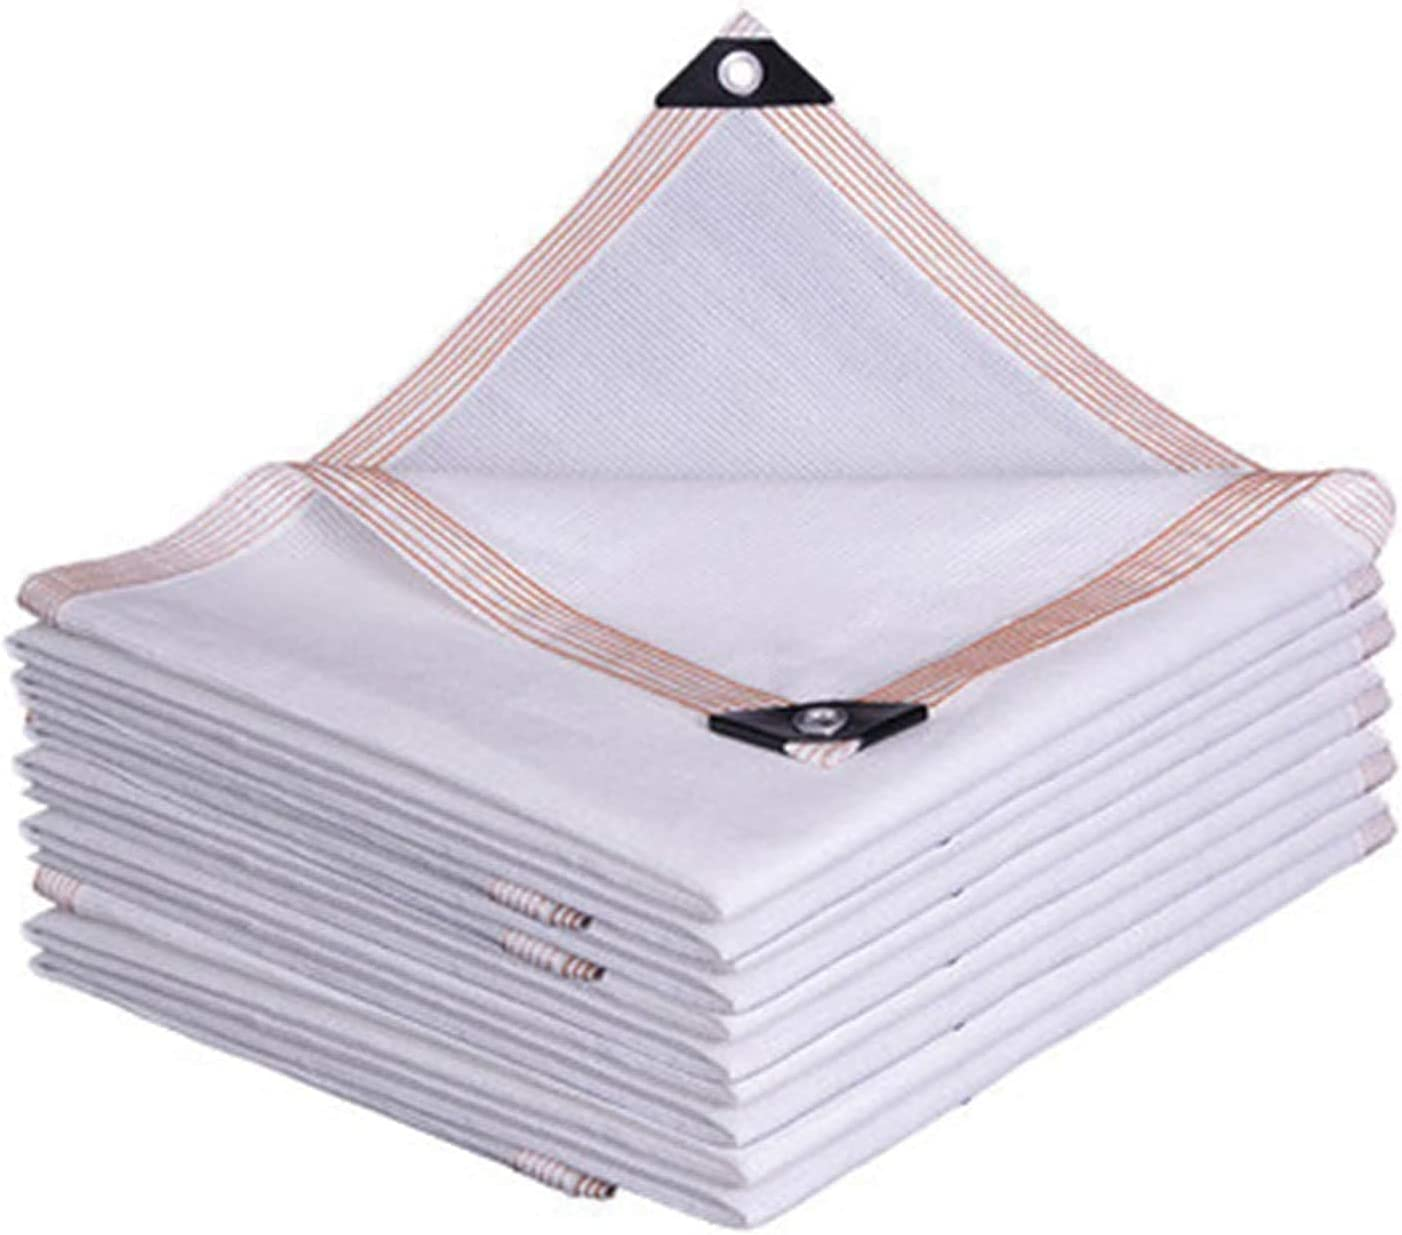 All stores are sold LIXFDJ Sun protectionMesh Tarps Shade Super beauty product restock quality top Su 85% Cloth Fabric